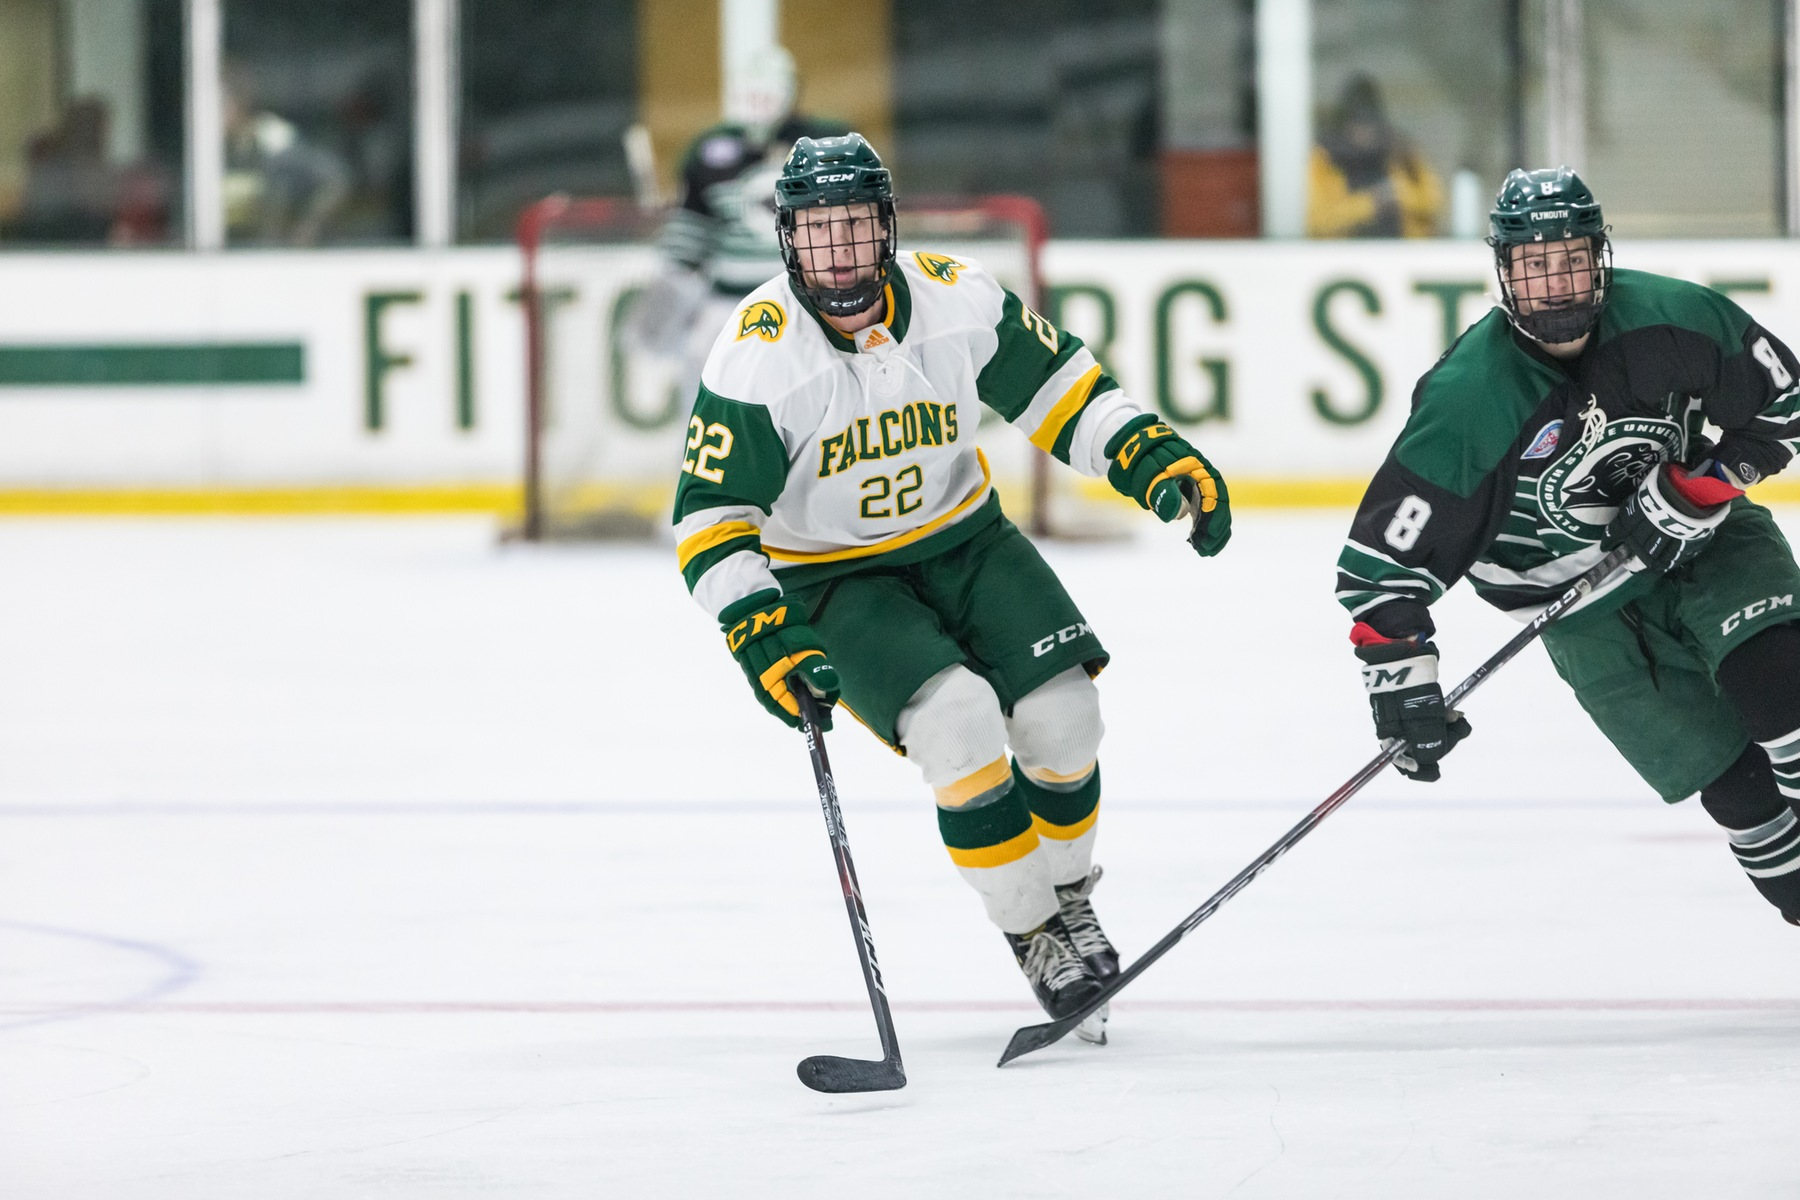 Fitchburg State Clipped By Albertus Magnus, 3-2 In Overtime